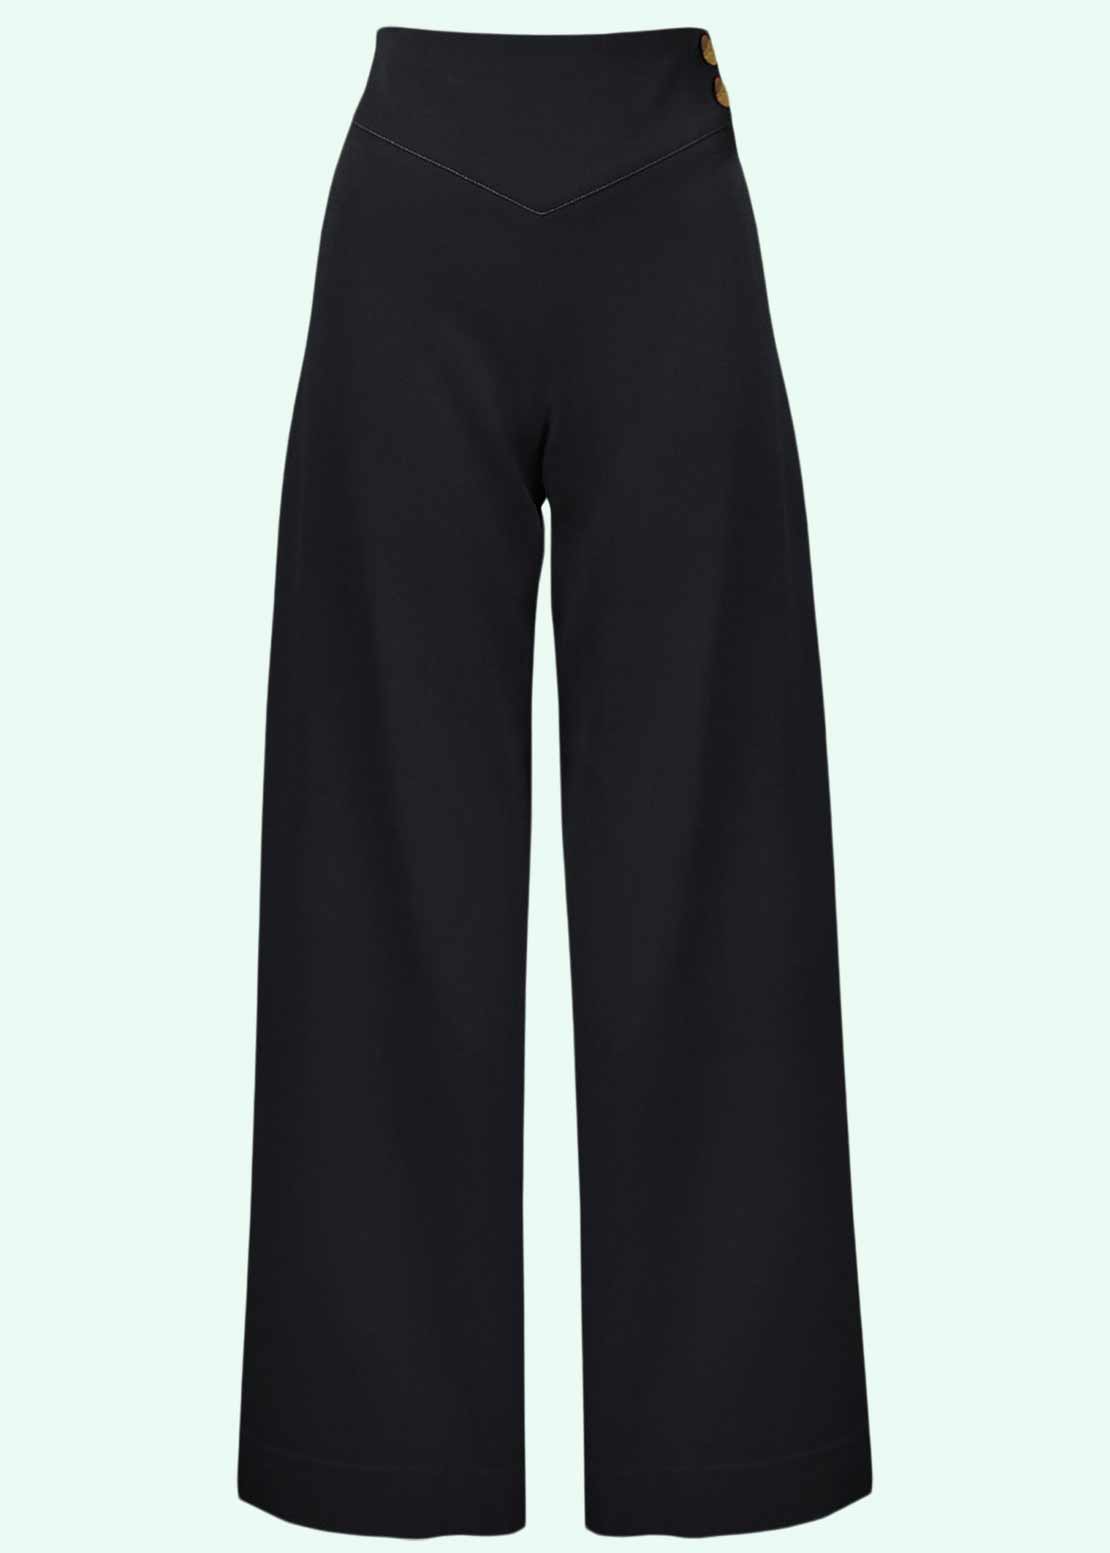 Riviera pants with wide legs vintage style